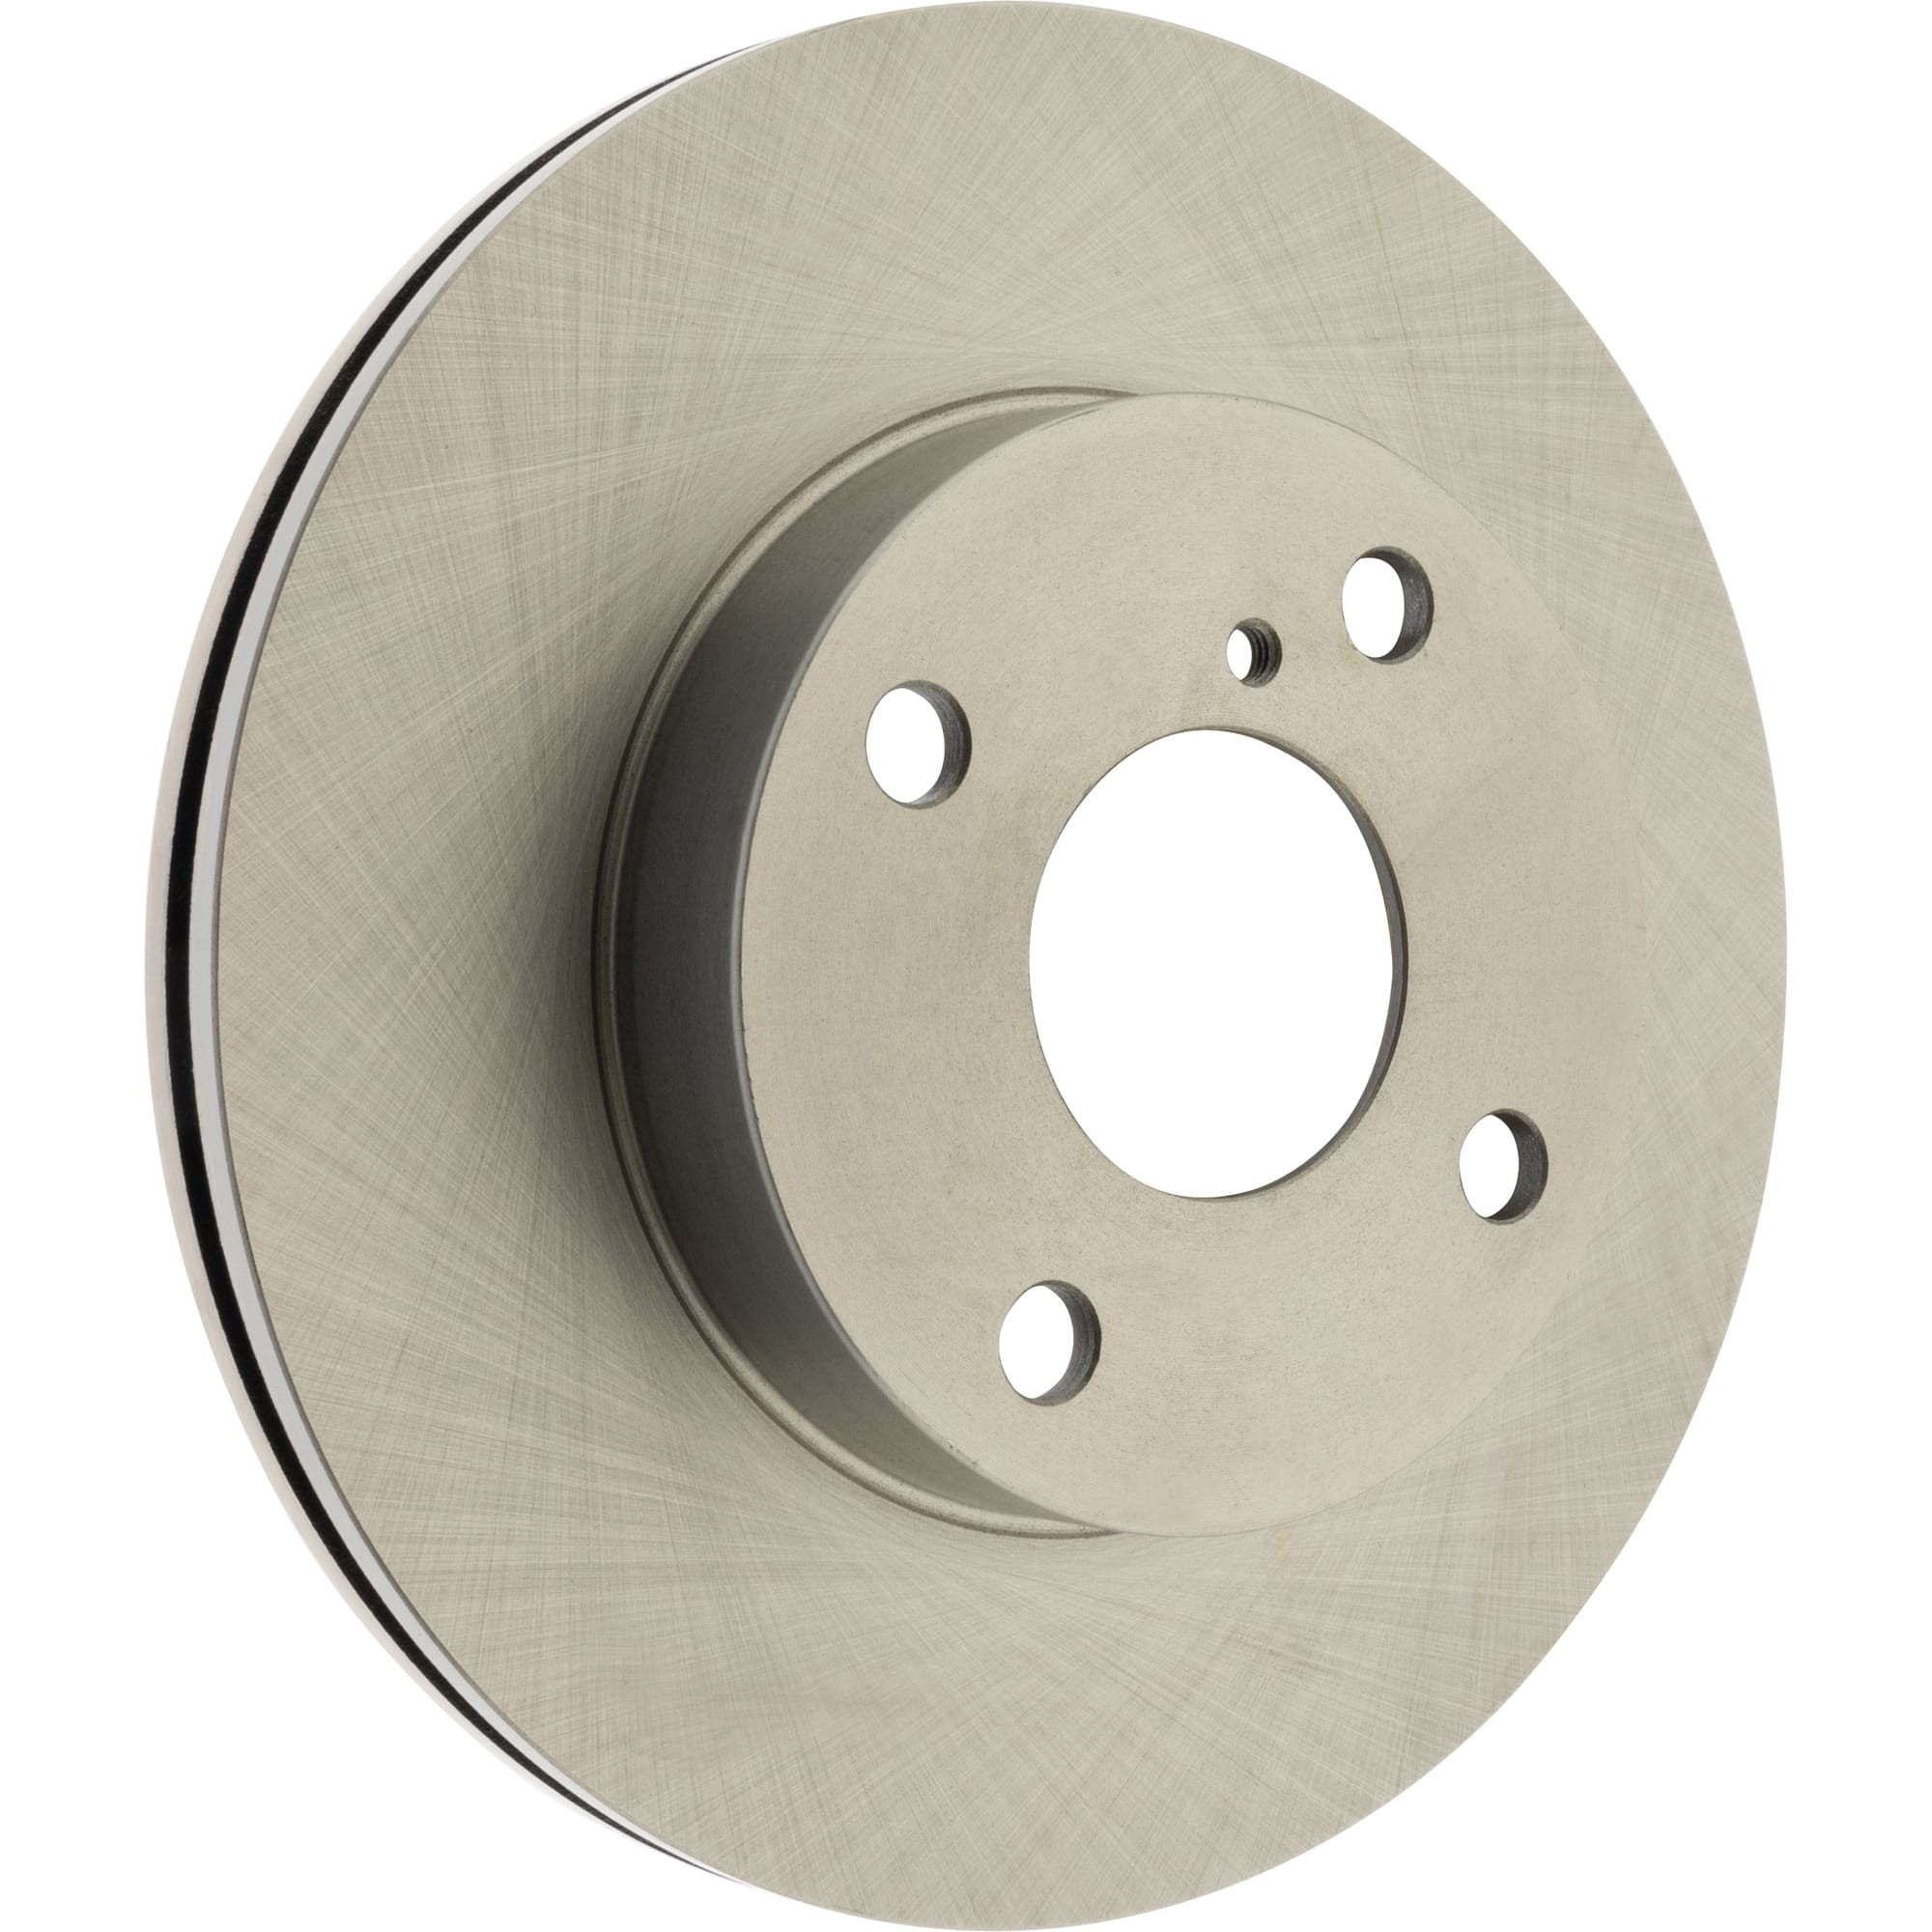 Brake And Rotor Replacement Cost >> 903-643 Replacement Brake Rotor - Front | MossMiata